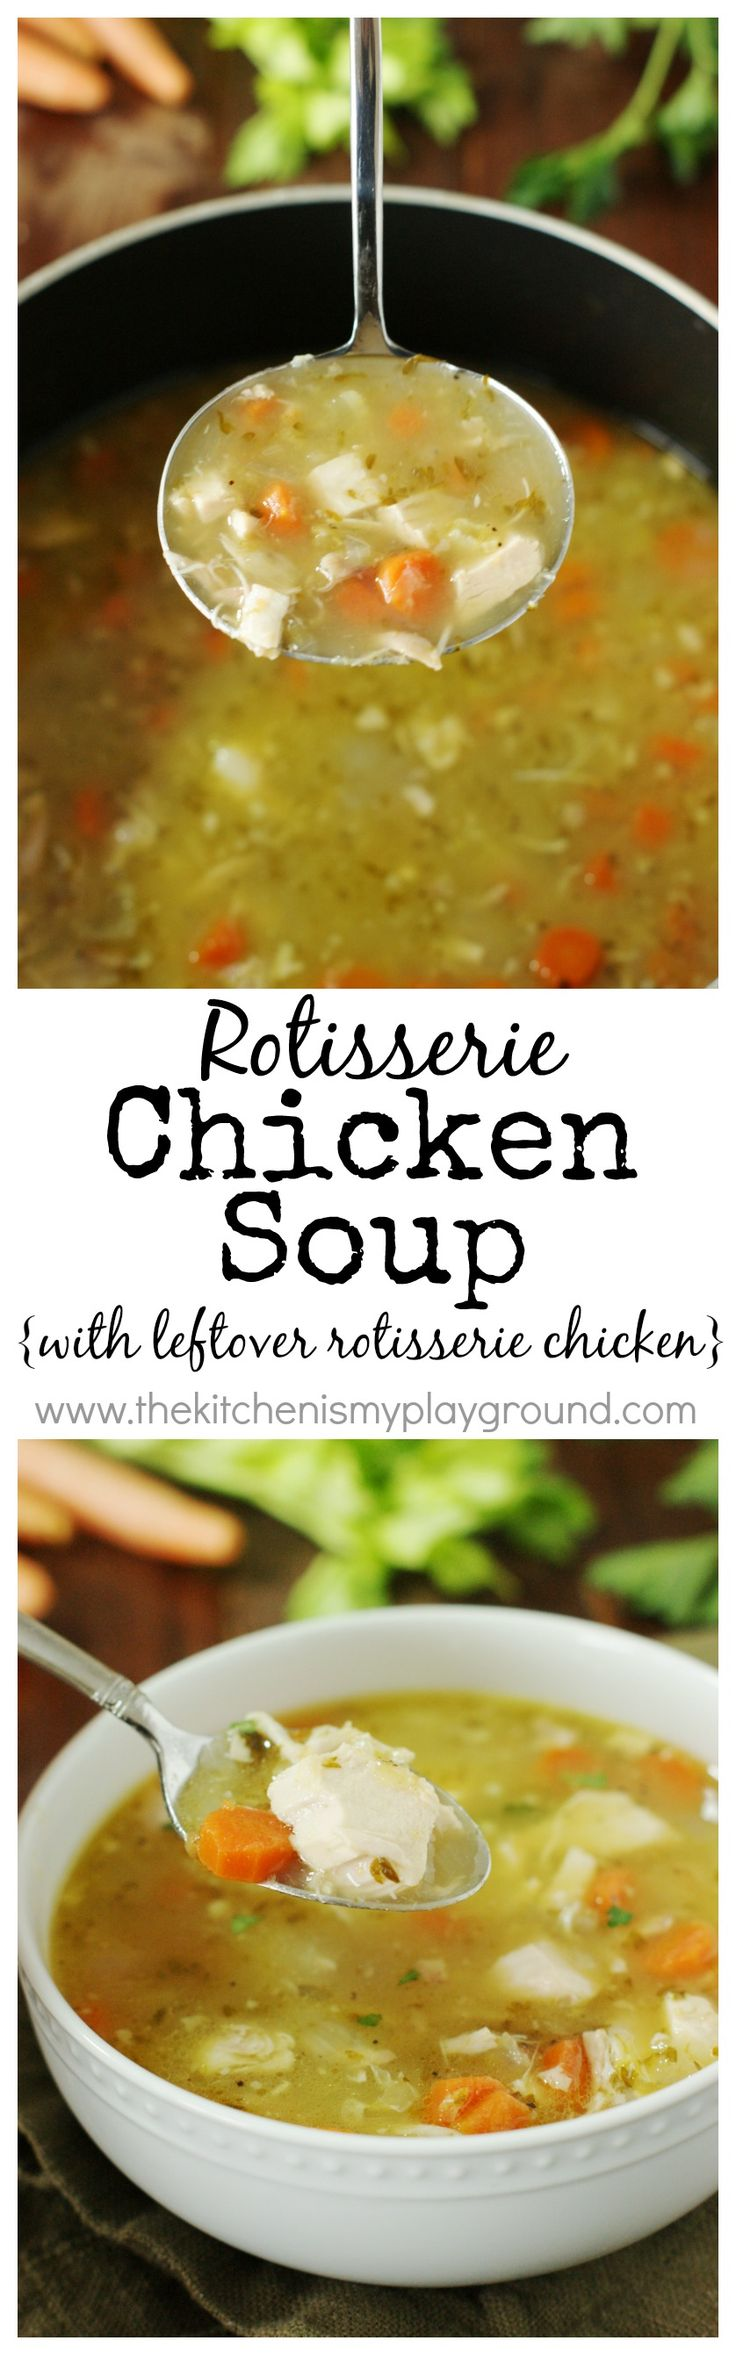 {Leftover} Rotisserie Chicken Soup ~ those store-bought rotisserie chickens make the BEST chicken soup and give it such wonderful, rich flavor!!  It's pure comfort food in a bowl.   www.thekitchenismyplayground.com: